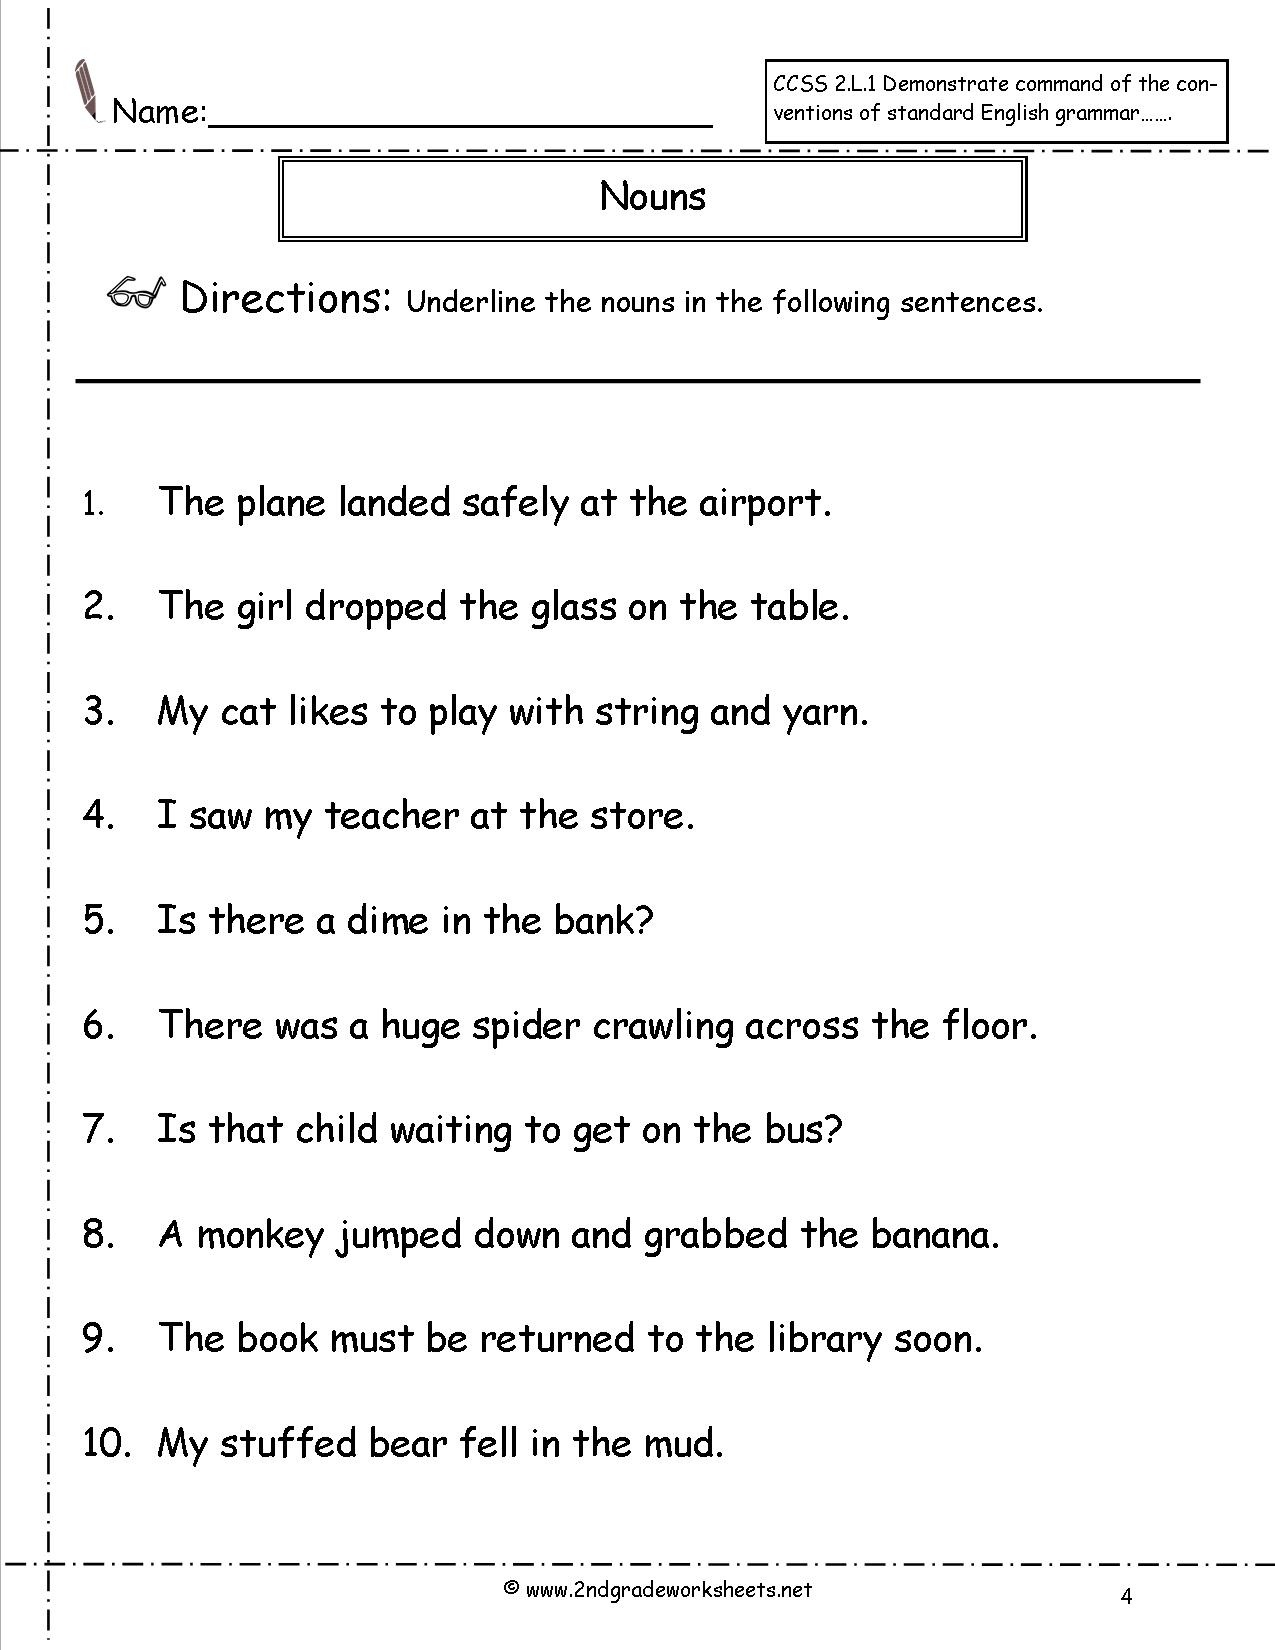 Nouns Worksheets And Printouts - Free Printable Pronoun Worksheets For 2Nd Grade